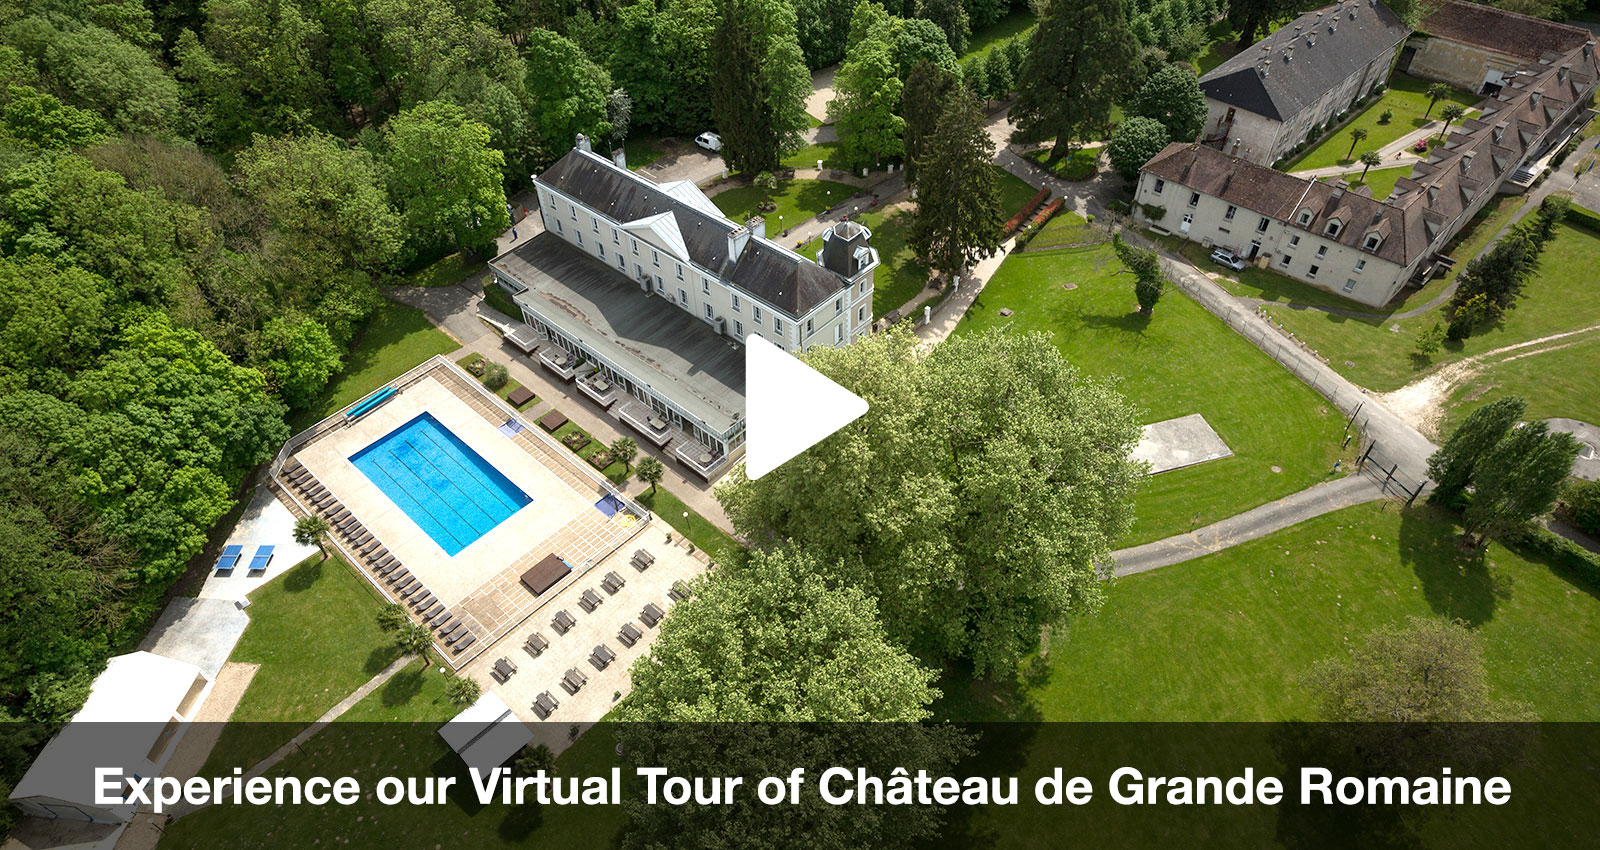 Primary school trips to Château de Grande Romaine